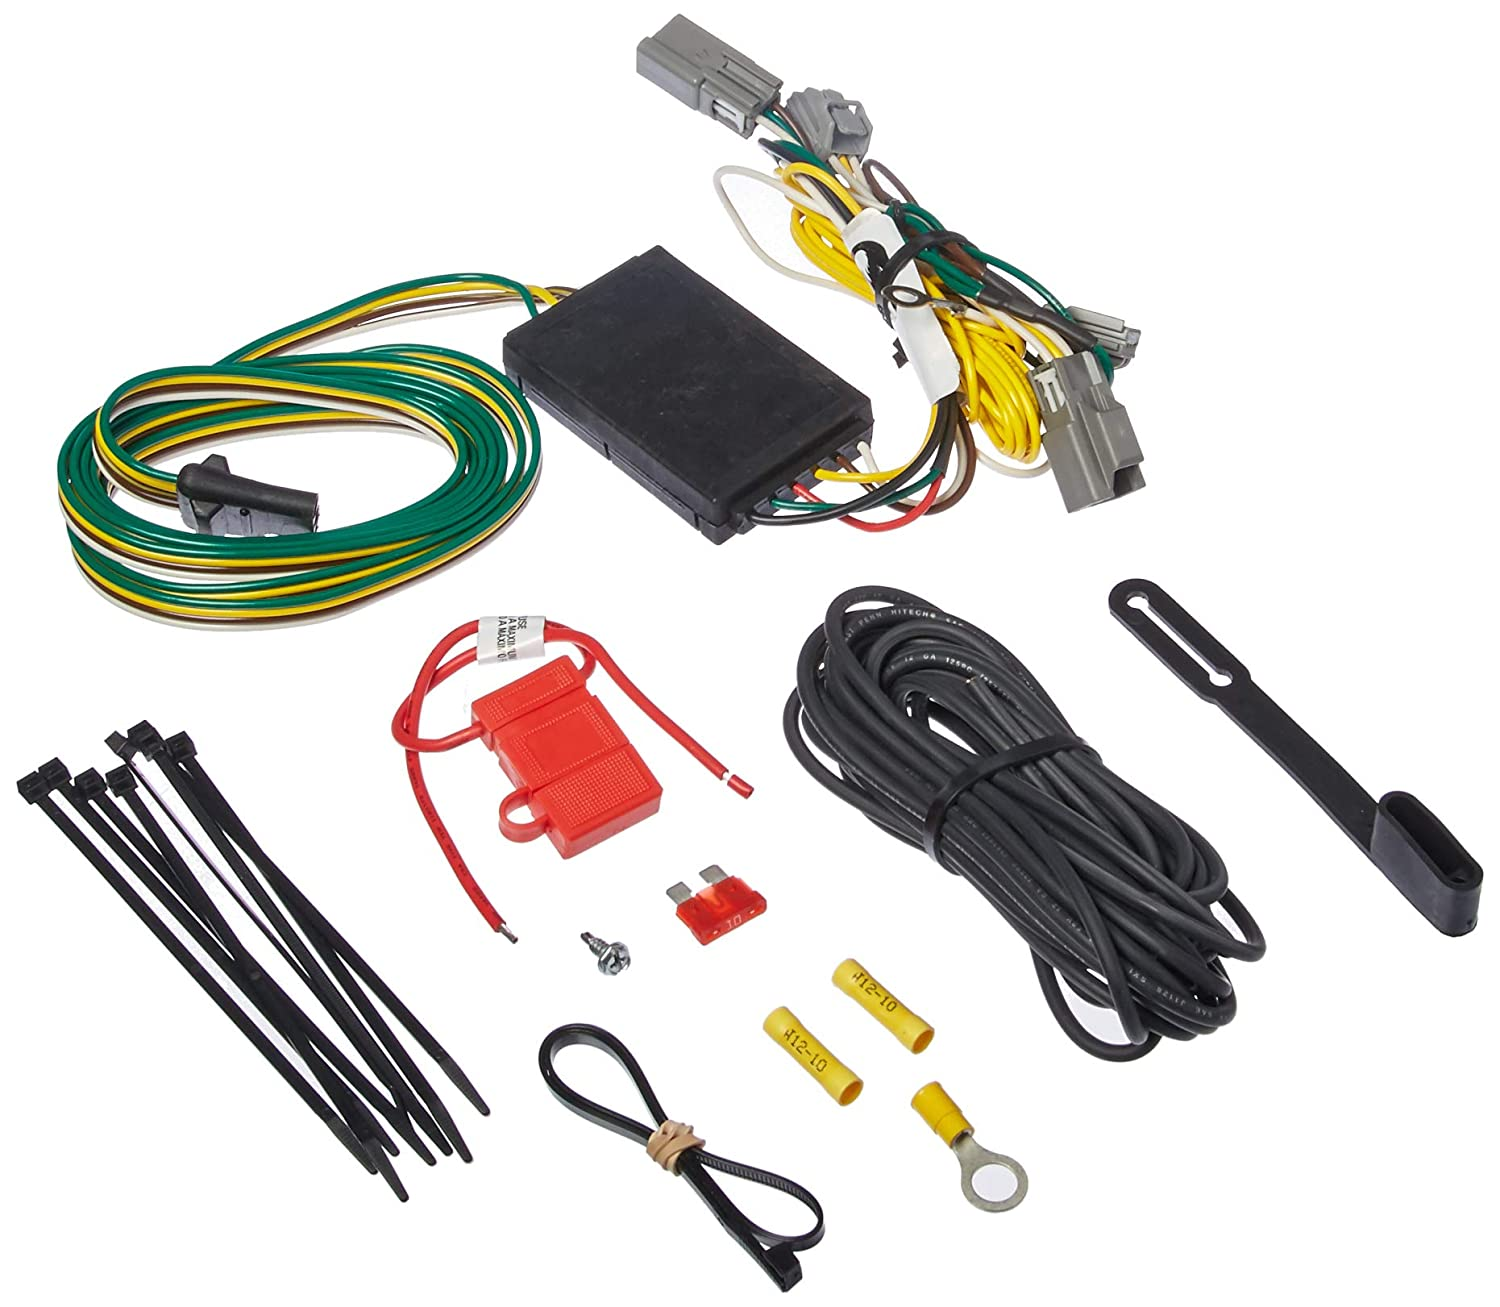 Amazon.com: Curt Manufacturing 56319 Custom Trailer Wiring Harness on 2001 chevy truck shift cable, 2001 chevy truck headlights, 2001 chevy truck tailgate parts, 2001 chevy truck parts diagram,